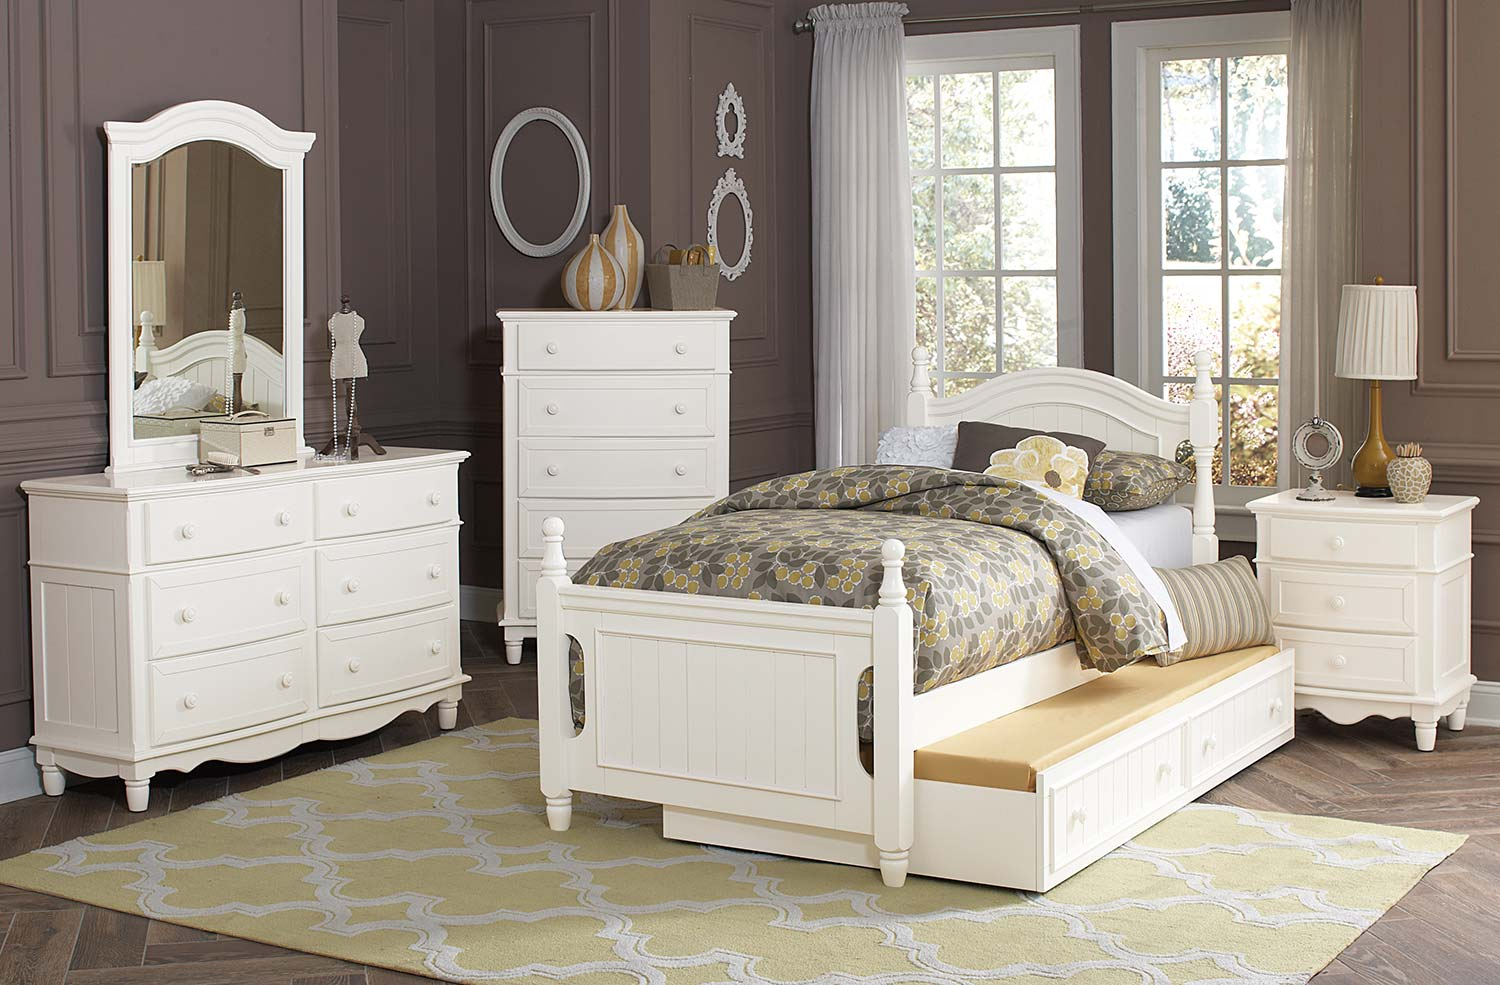 Homelegance Clementine 5pc White Full with Trundle Bedroom Group